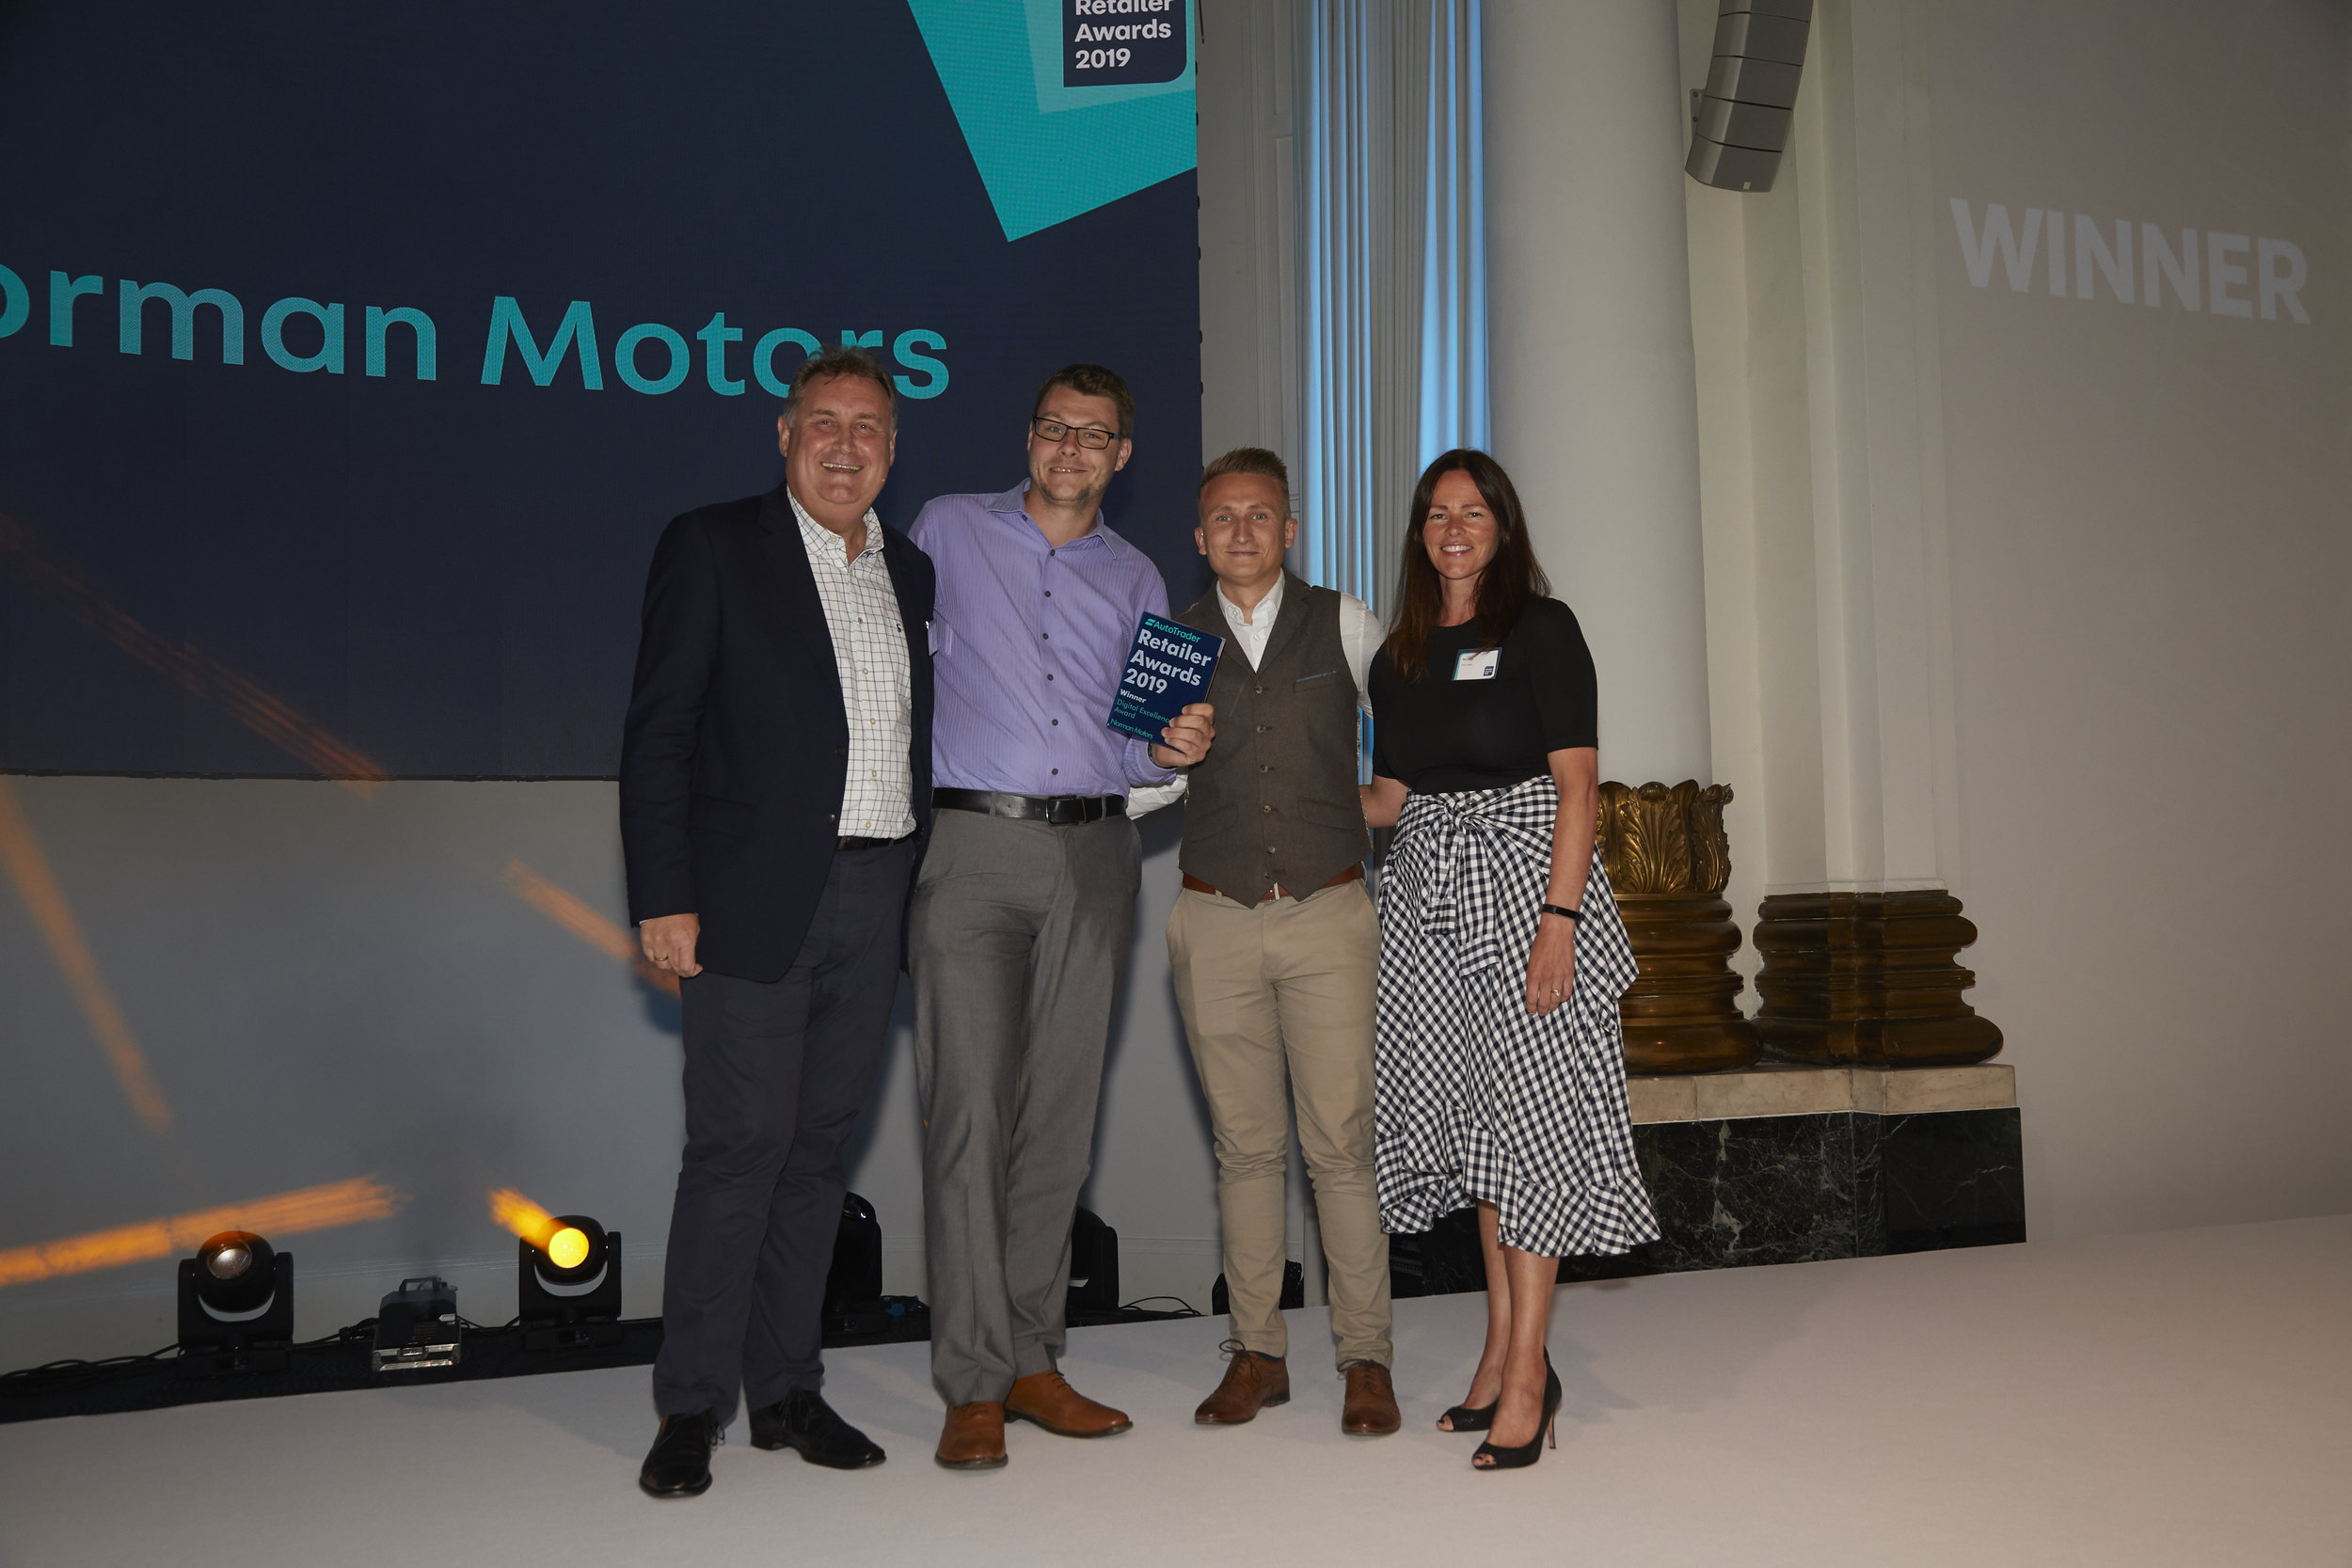 Digital Excellence Awards (50-100 cars)